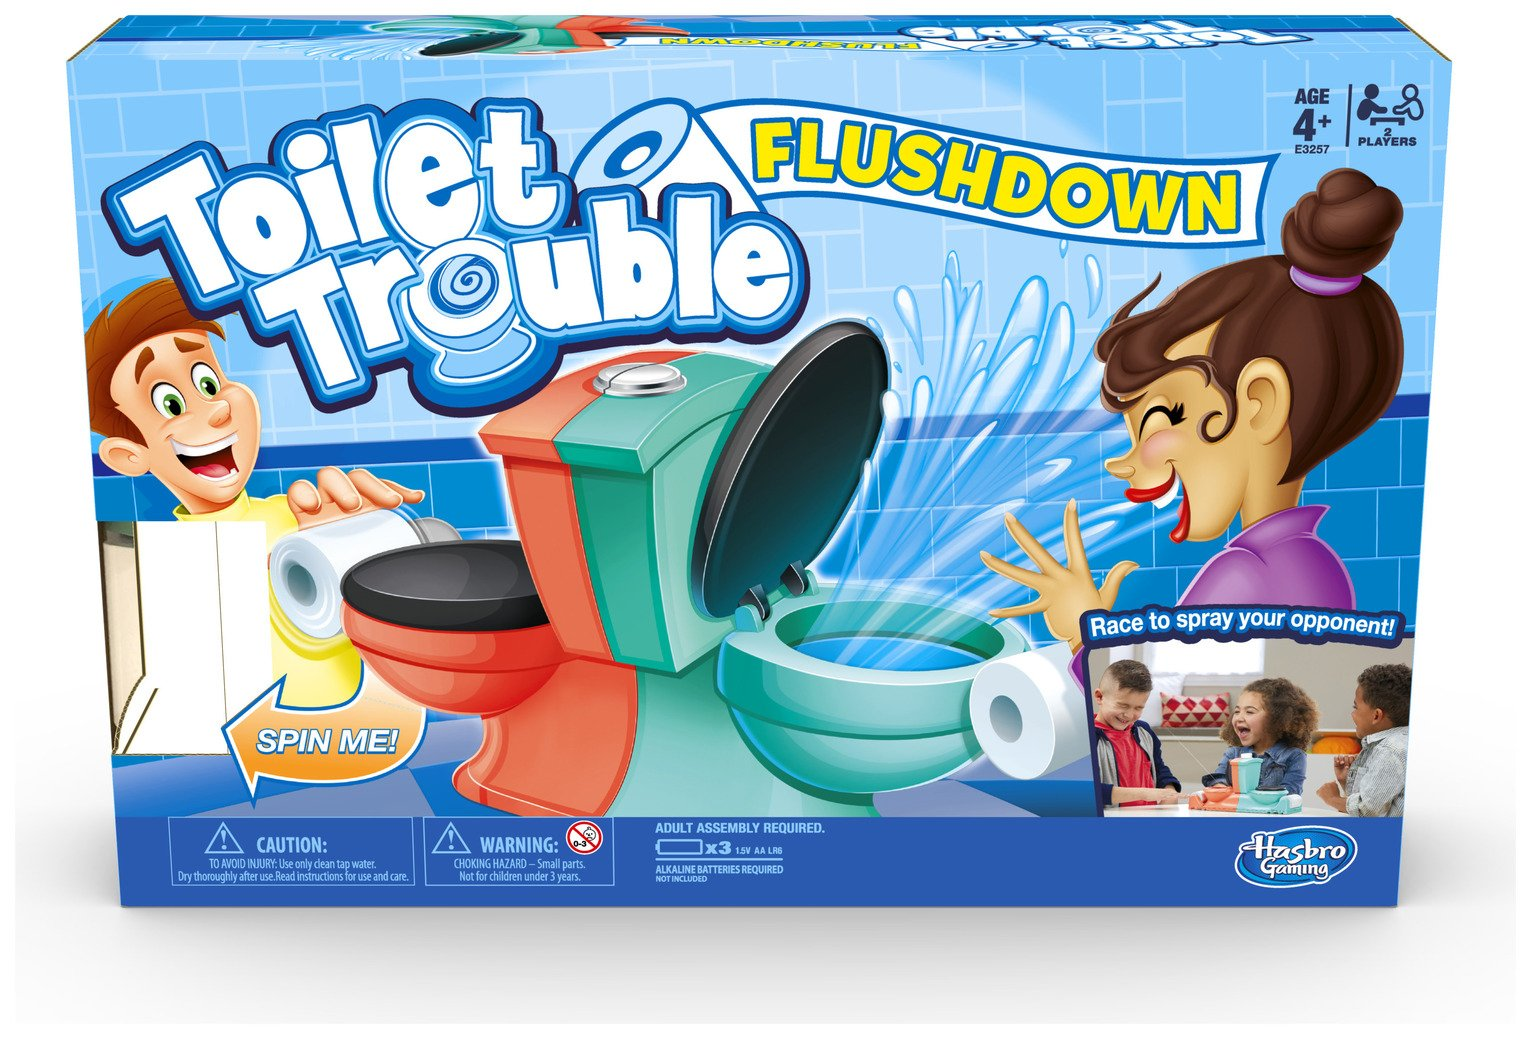 Toilet Trouble Flushdown Kids Game from Hasbro Gaming